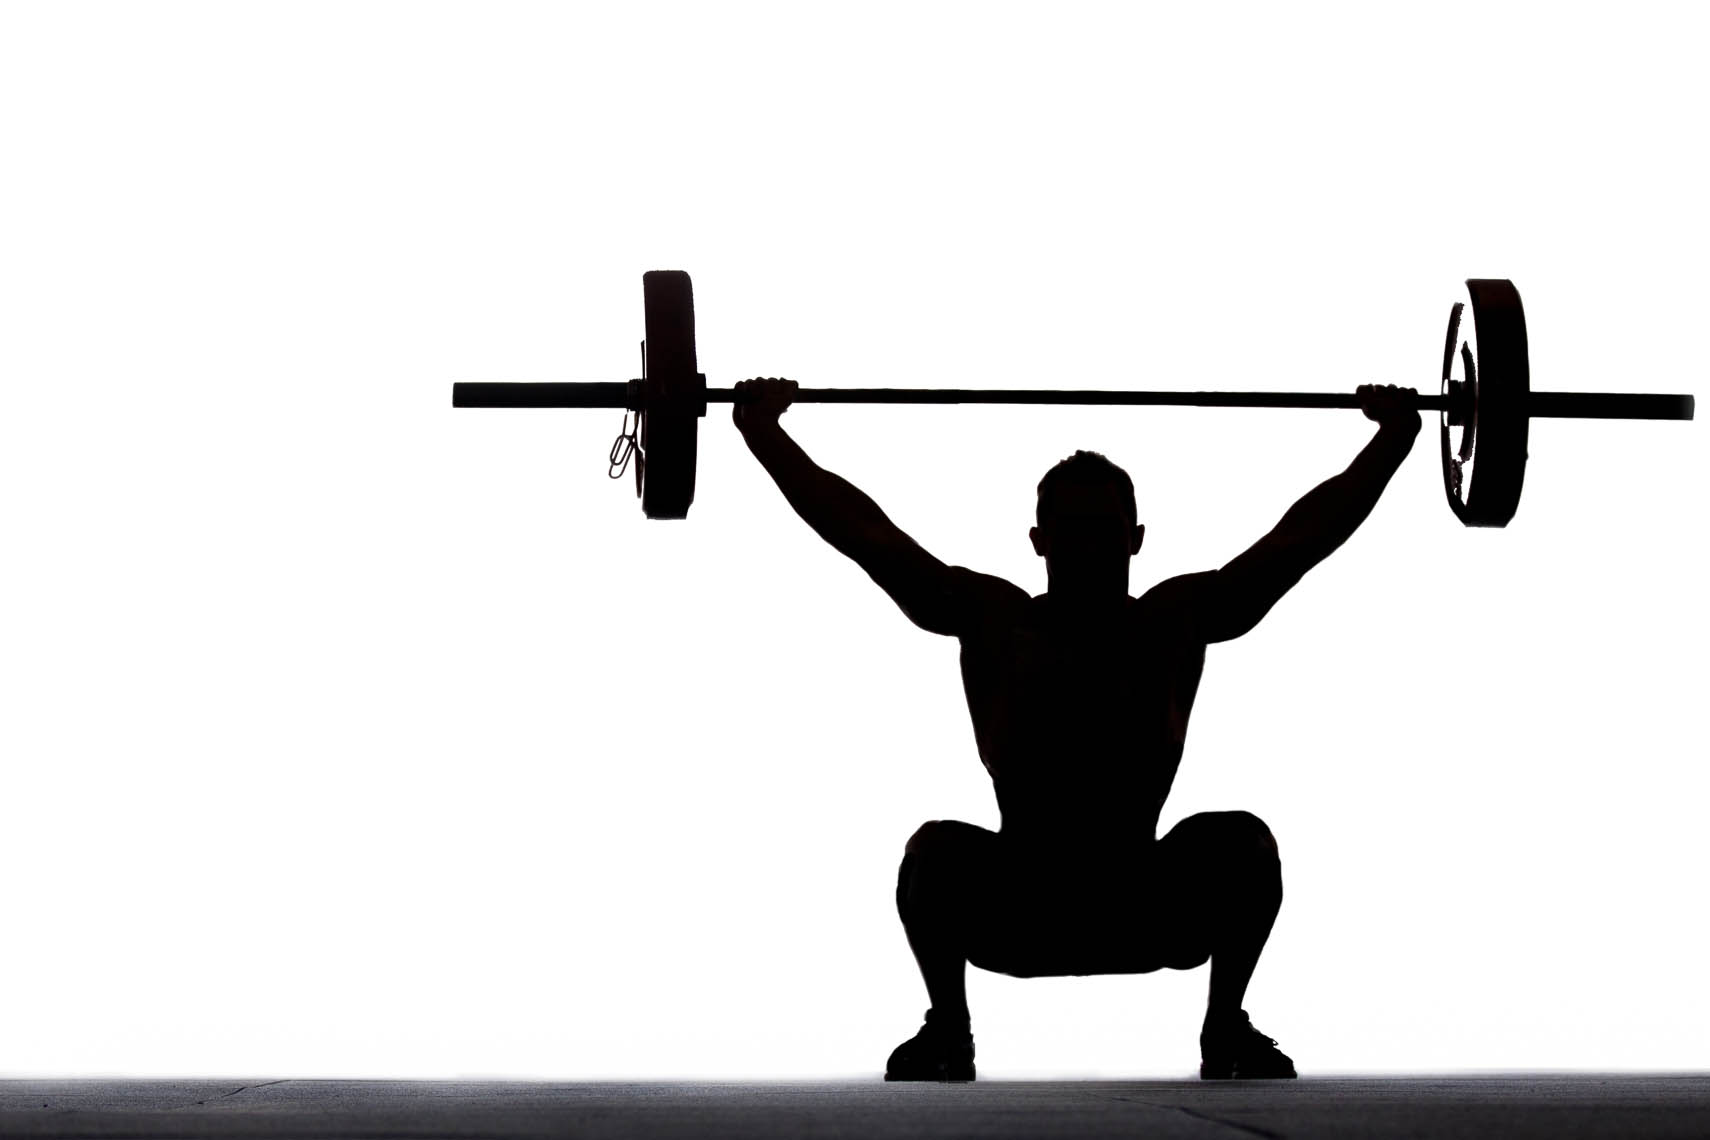 Free Crossfit Silhouette, Download Free Clip Art, Free Clip.